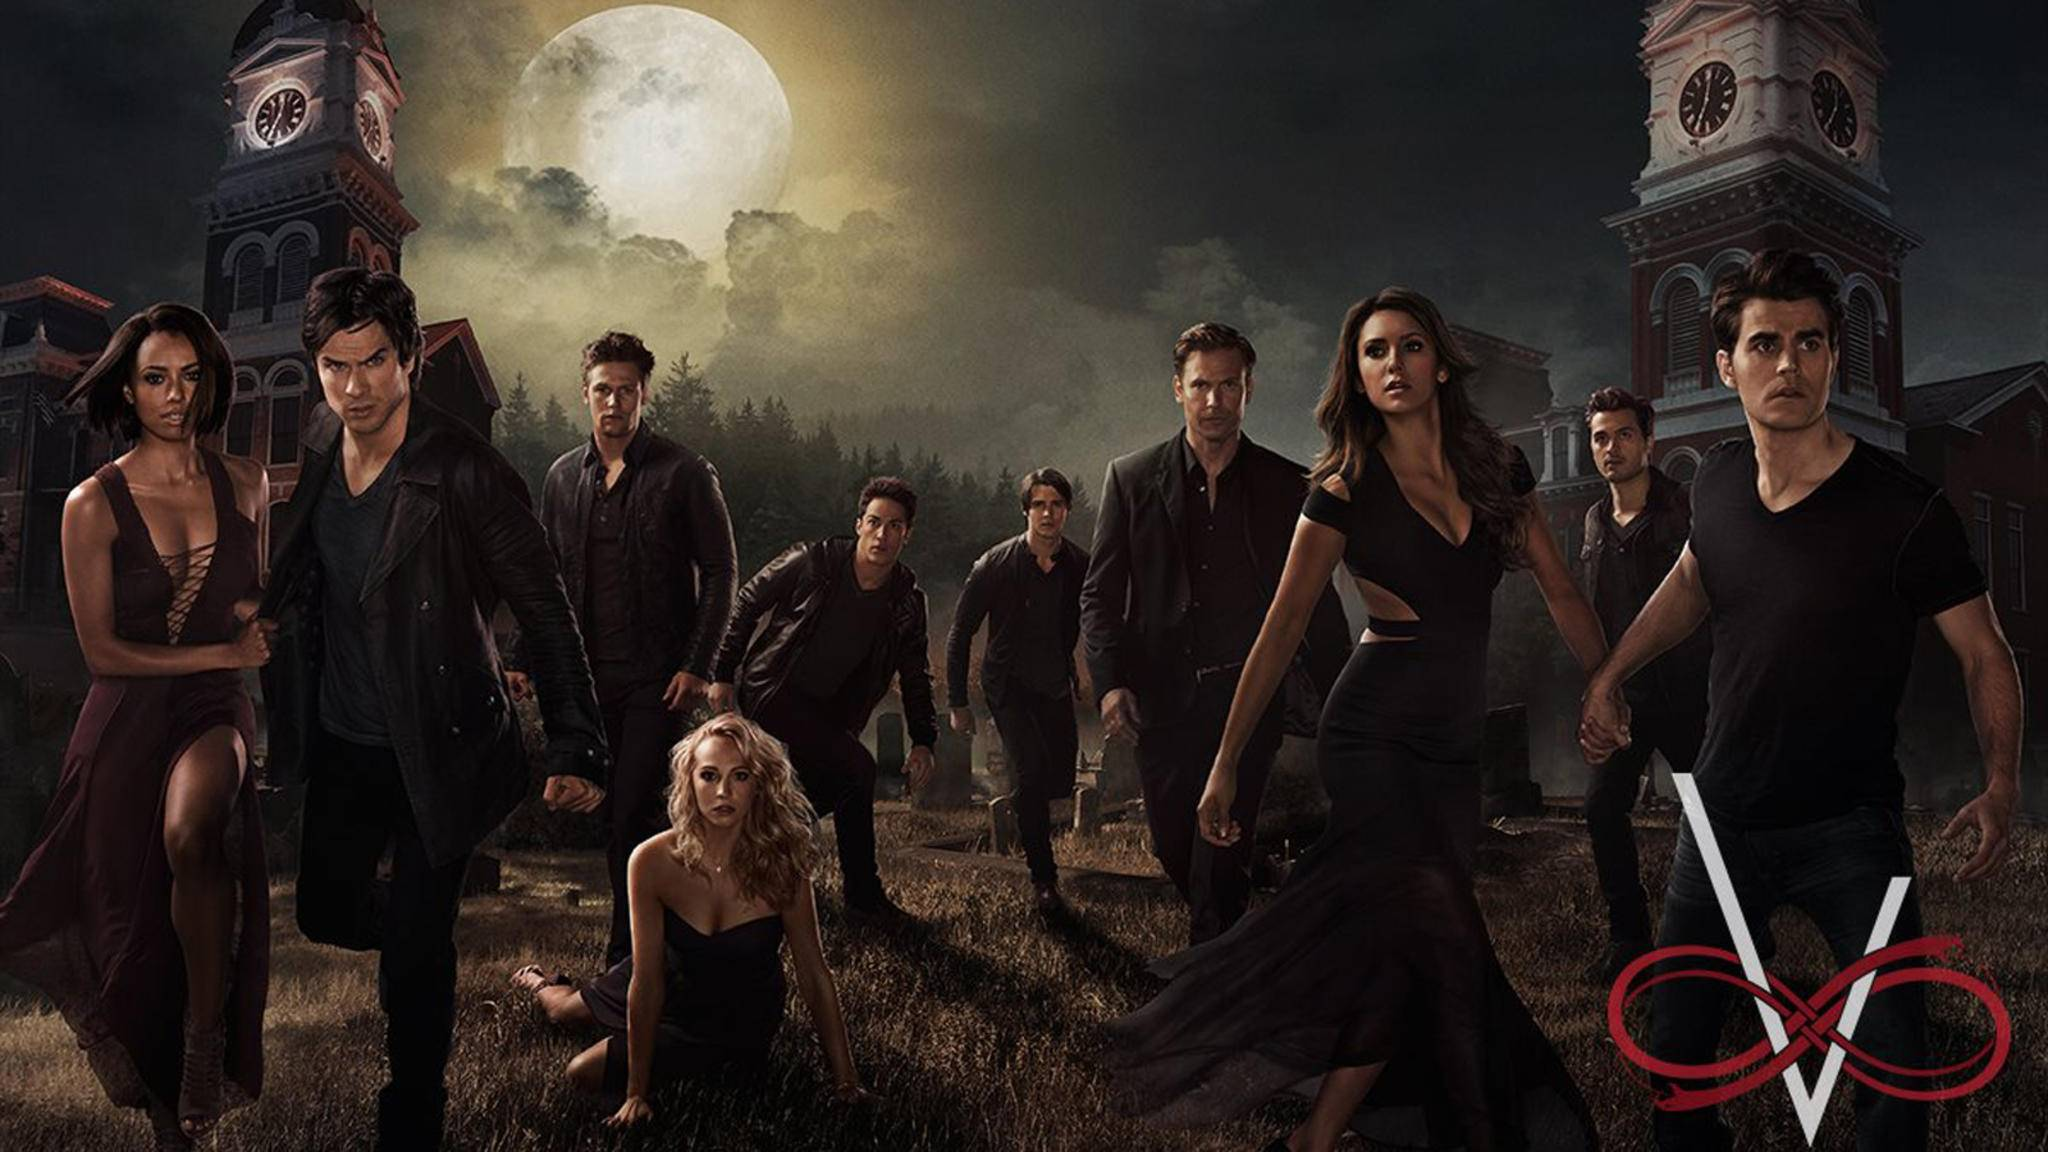 Vampire Diaries Cast Staffel 6